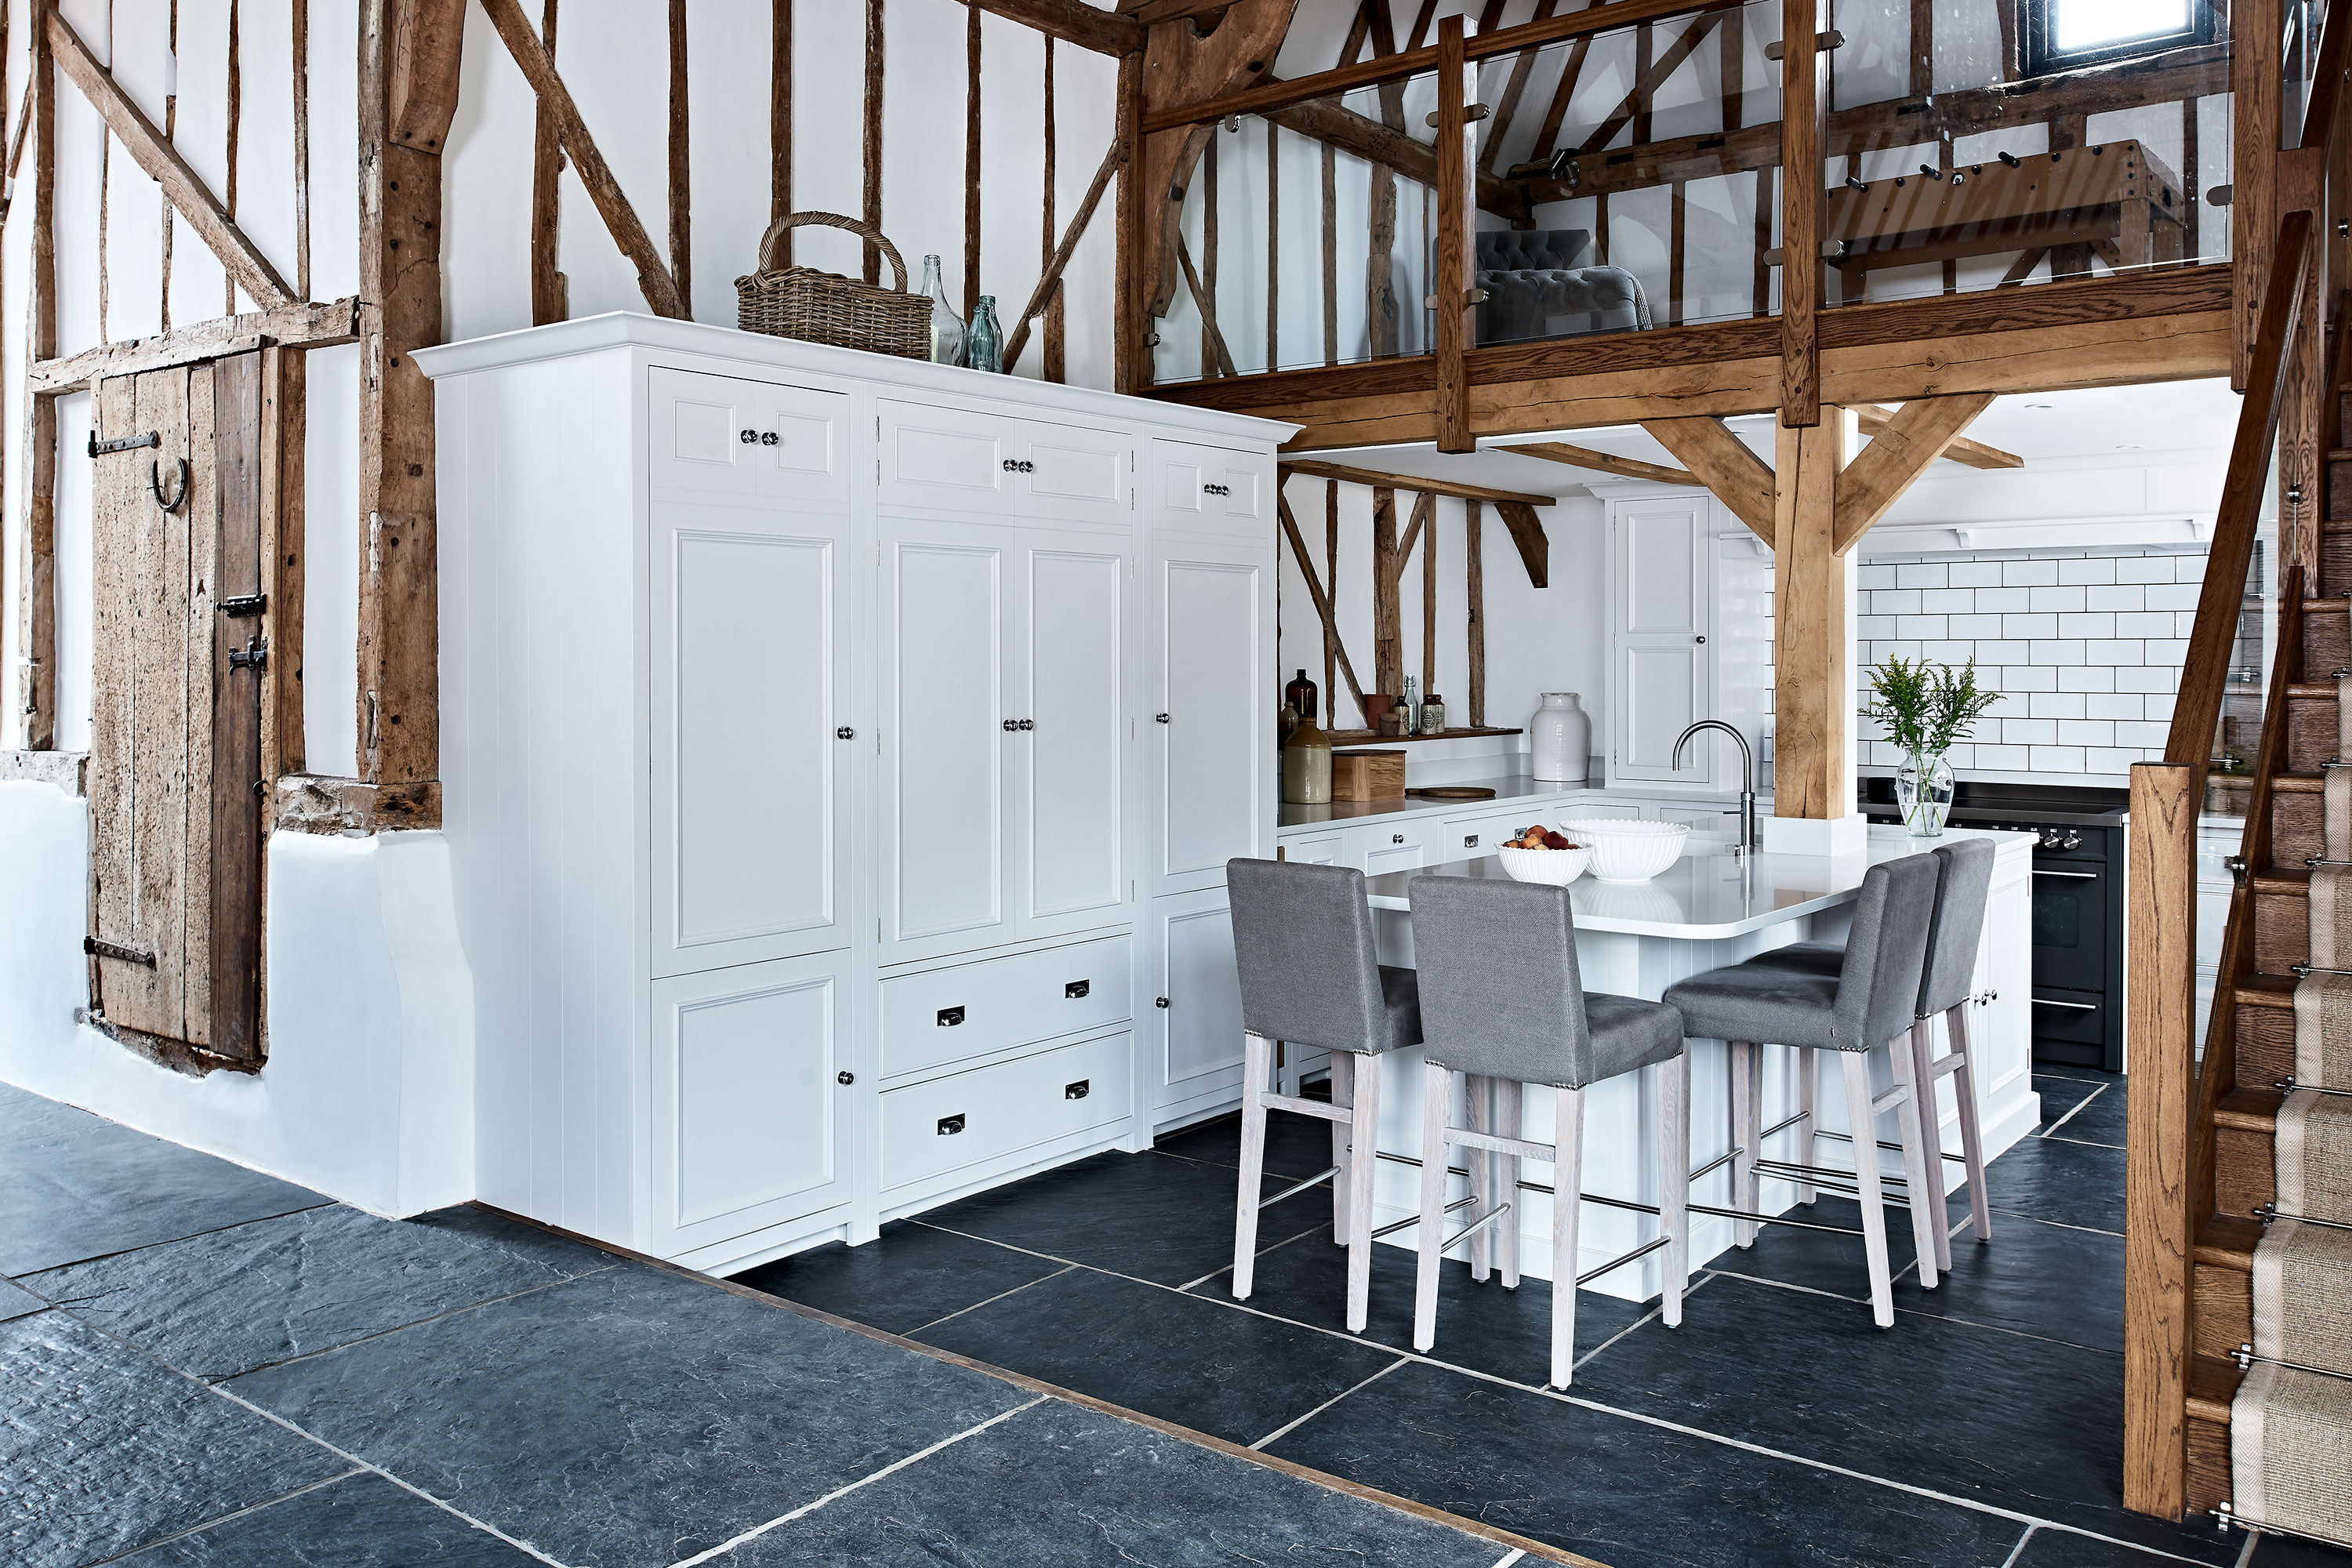 Barn Conversion Kitchen Ideas Designs That Make The Most Of Your Space Country